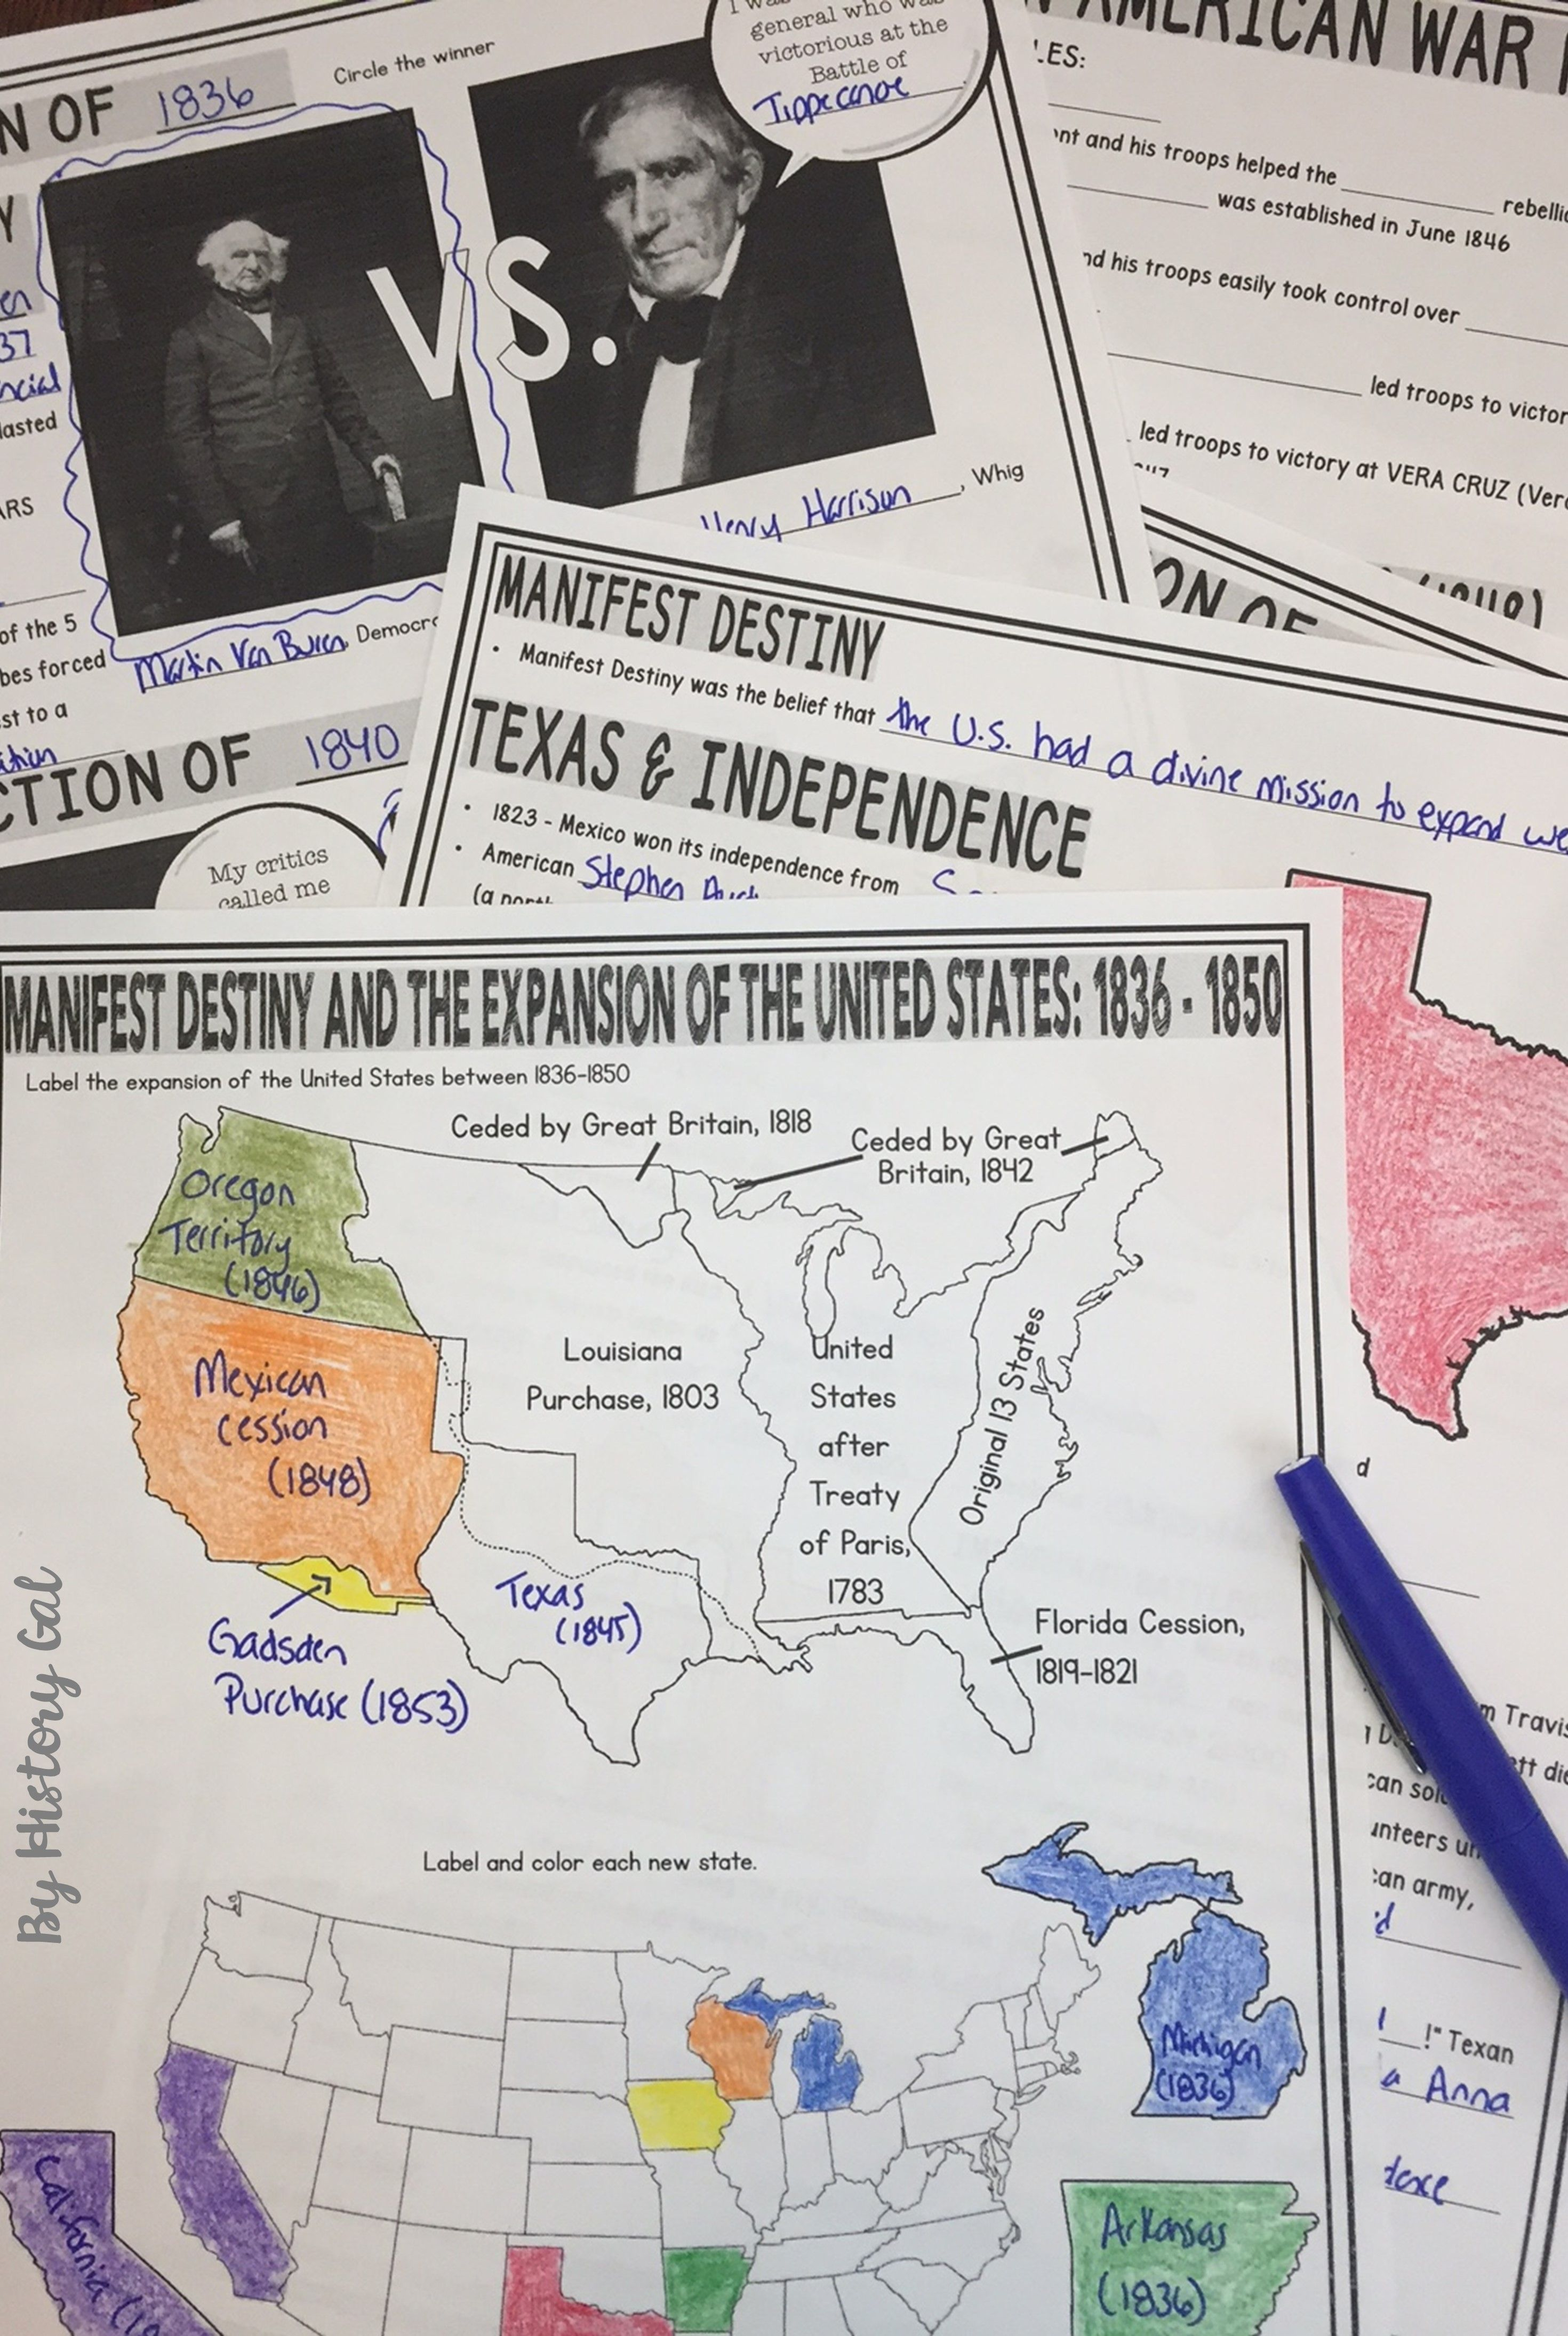 Manifest Destiny & the Expansion of the United States